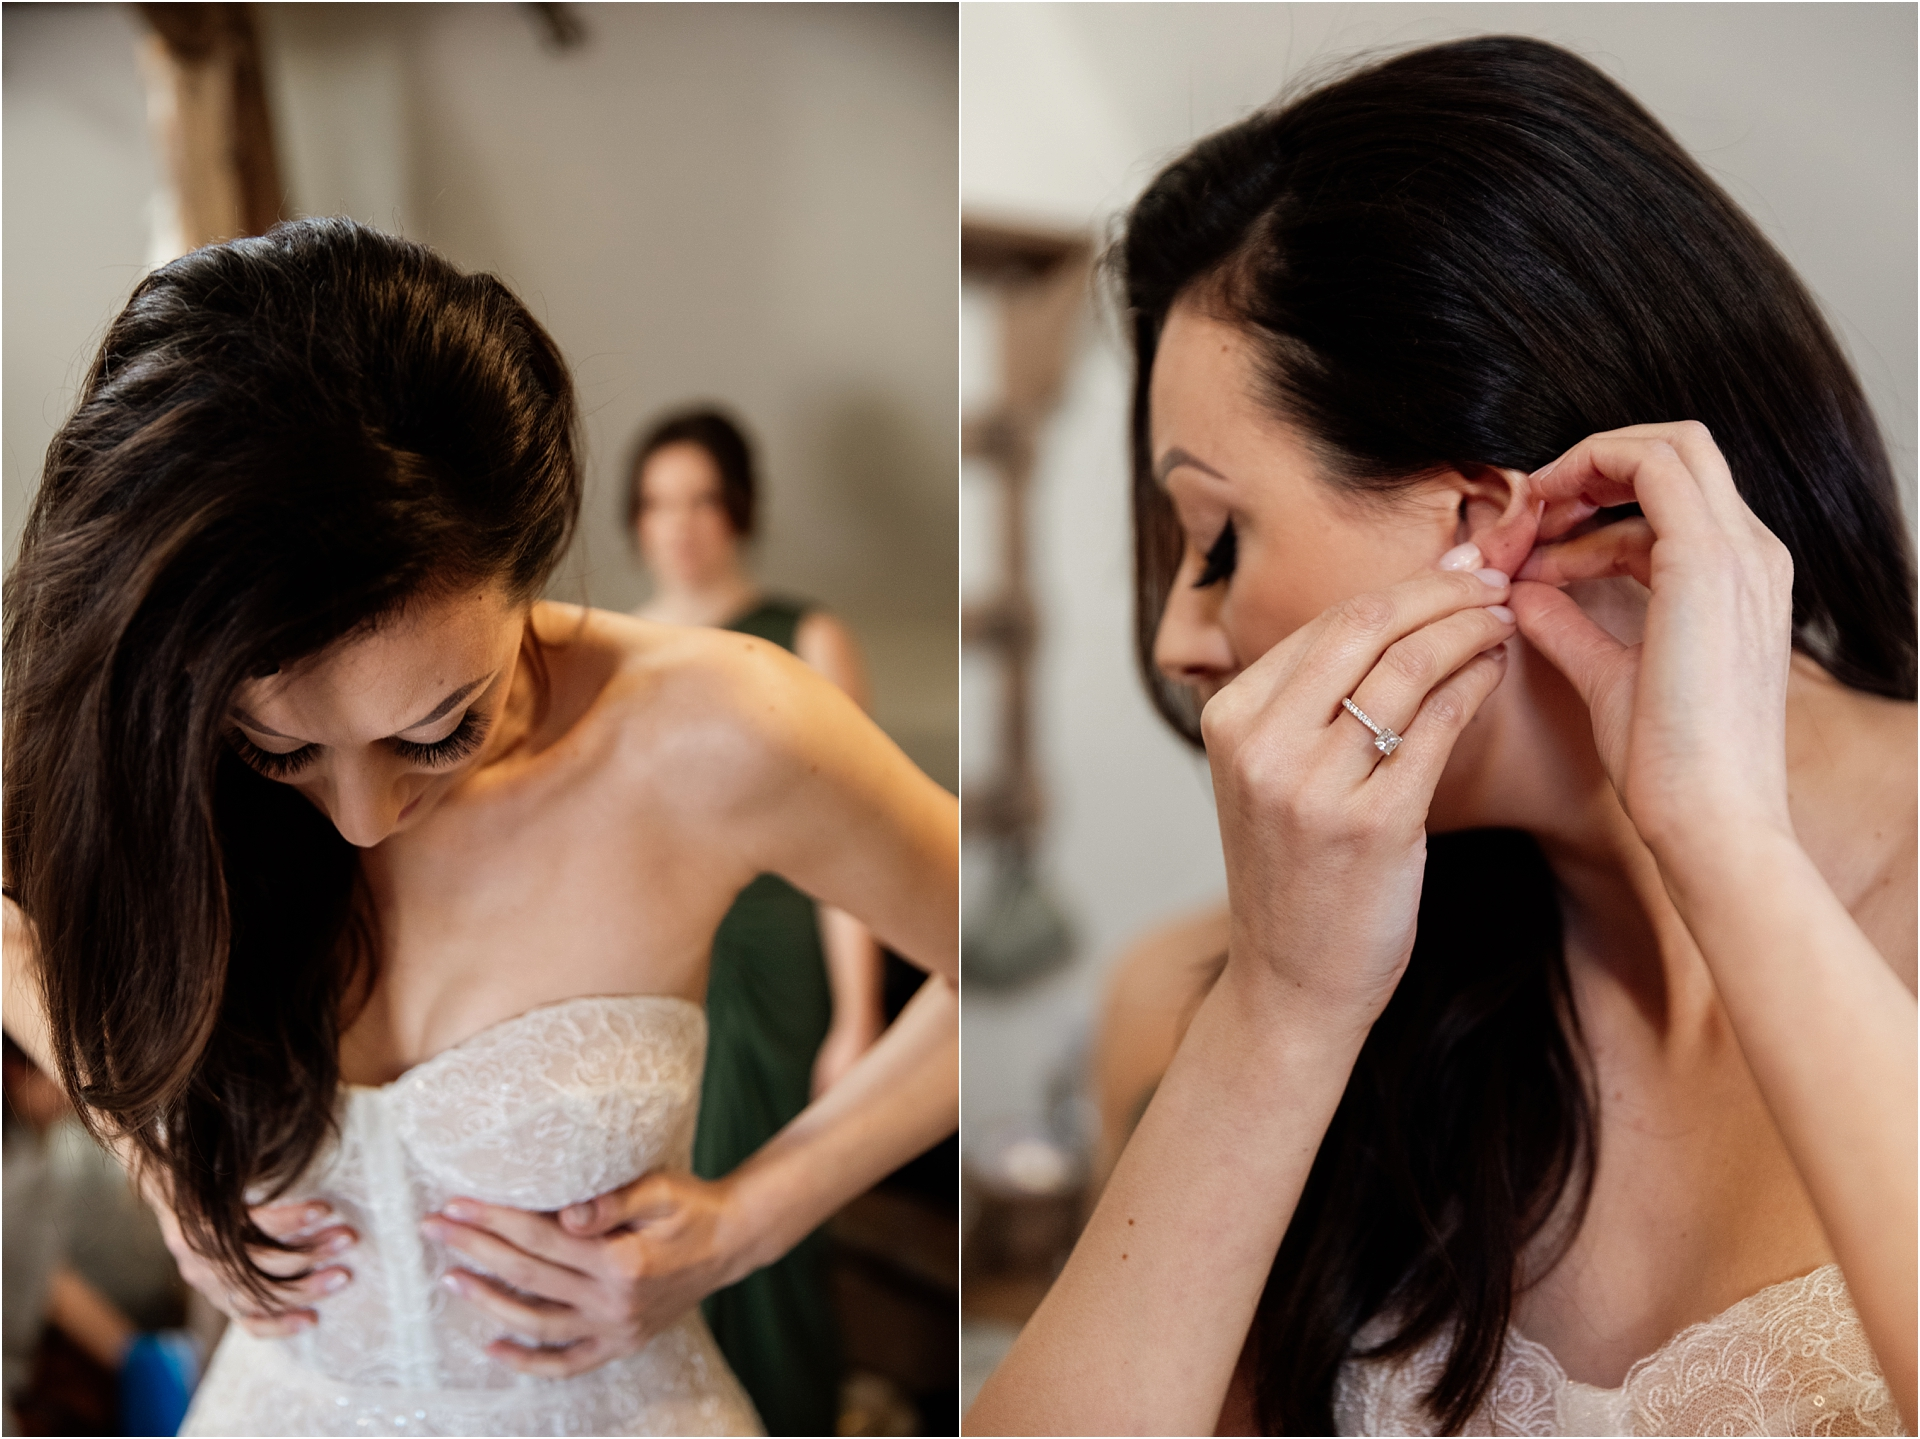 Bridal prep at Lapstone Barn